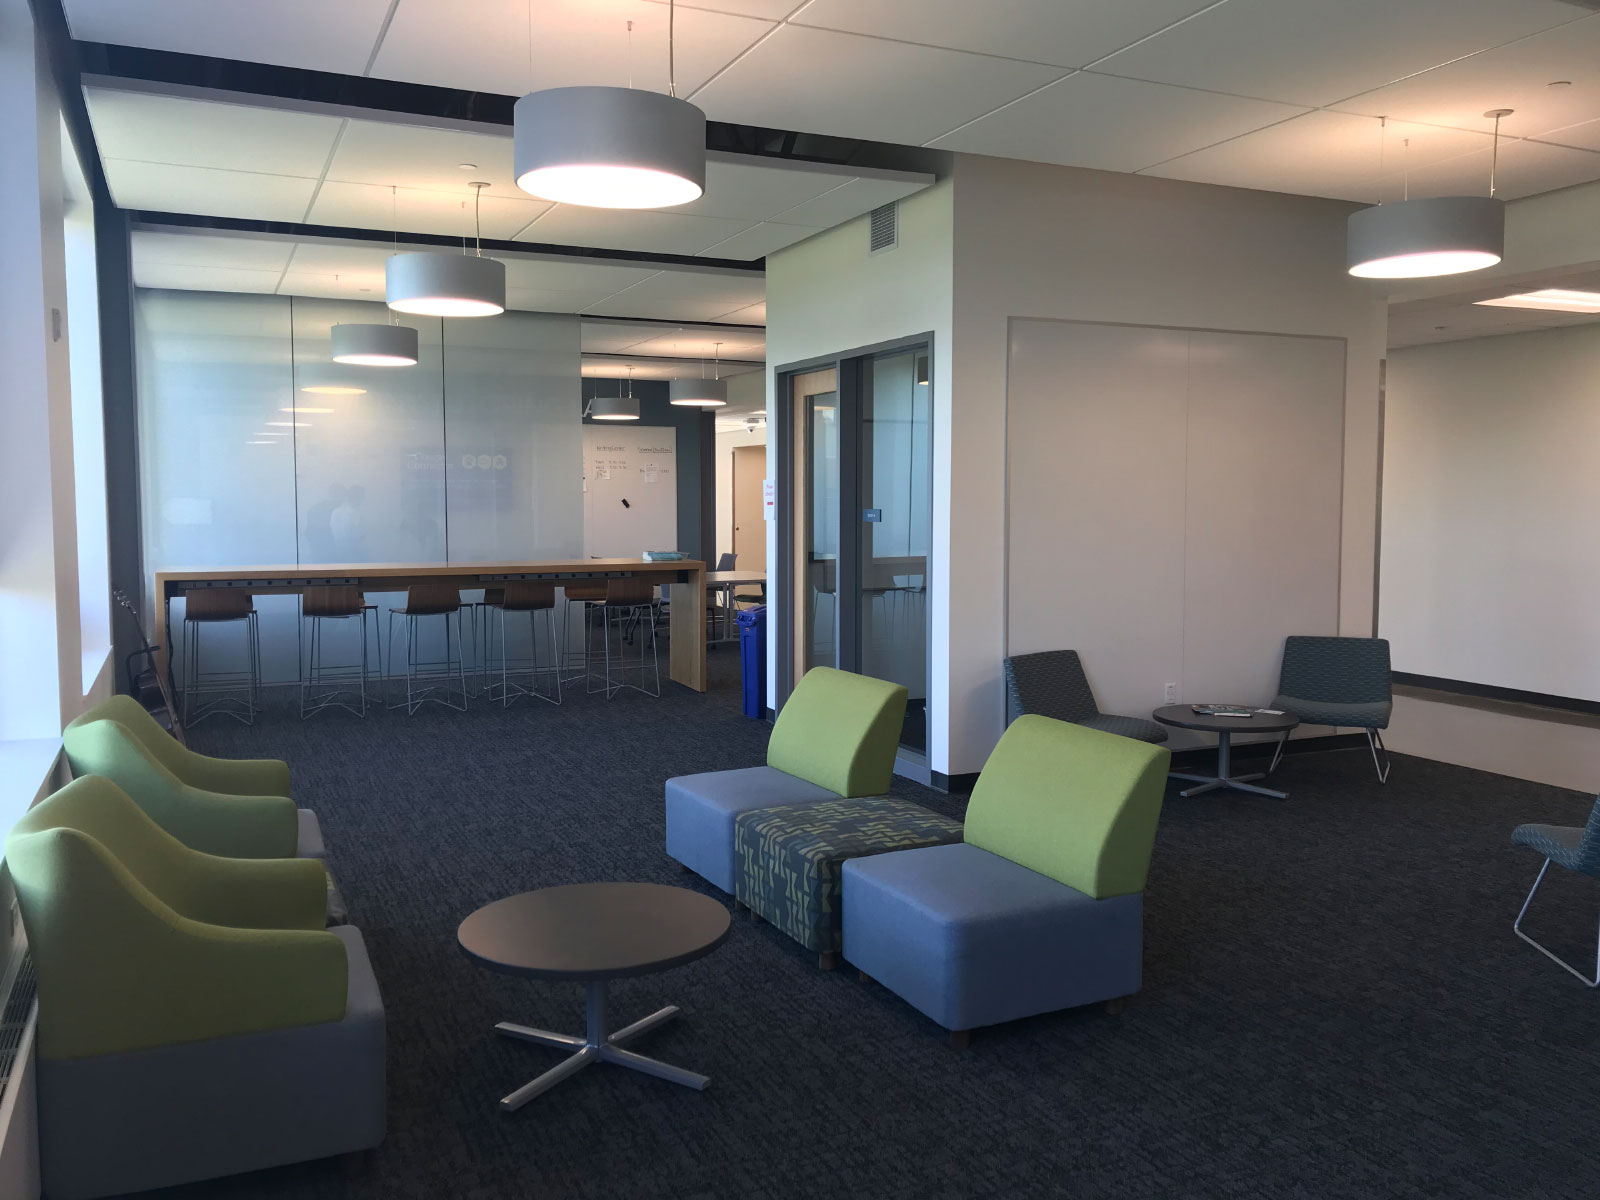 Various small meeting spaces with green and blue chairs in the Harmony campus lobby